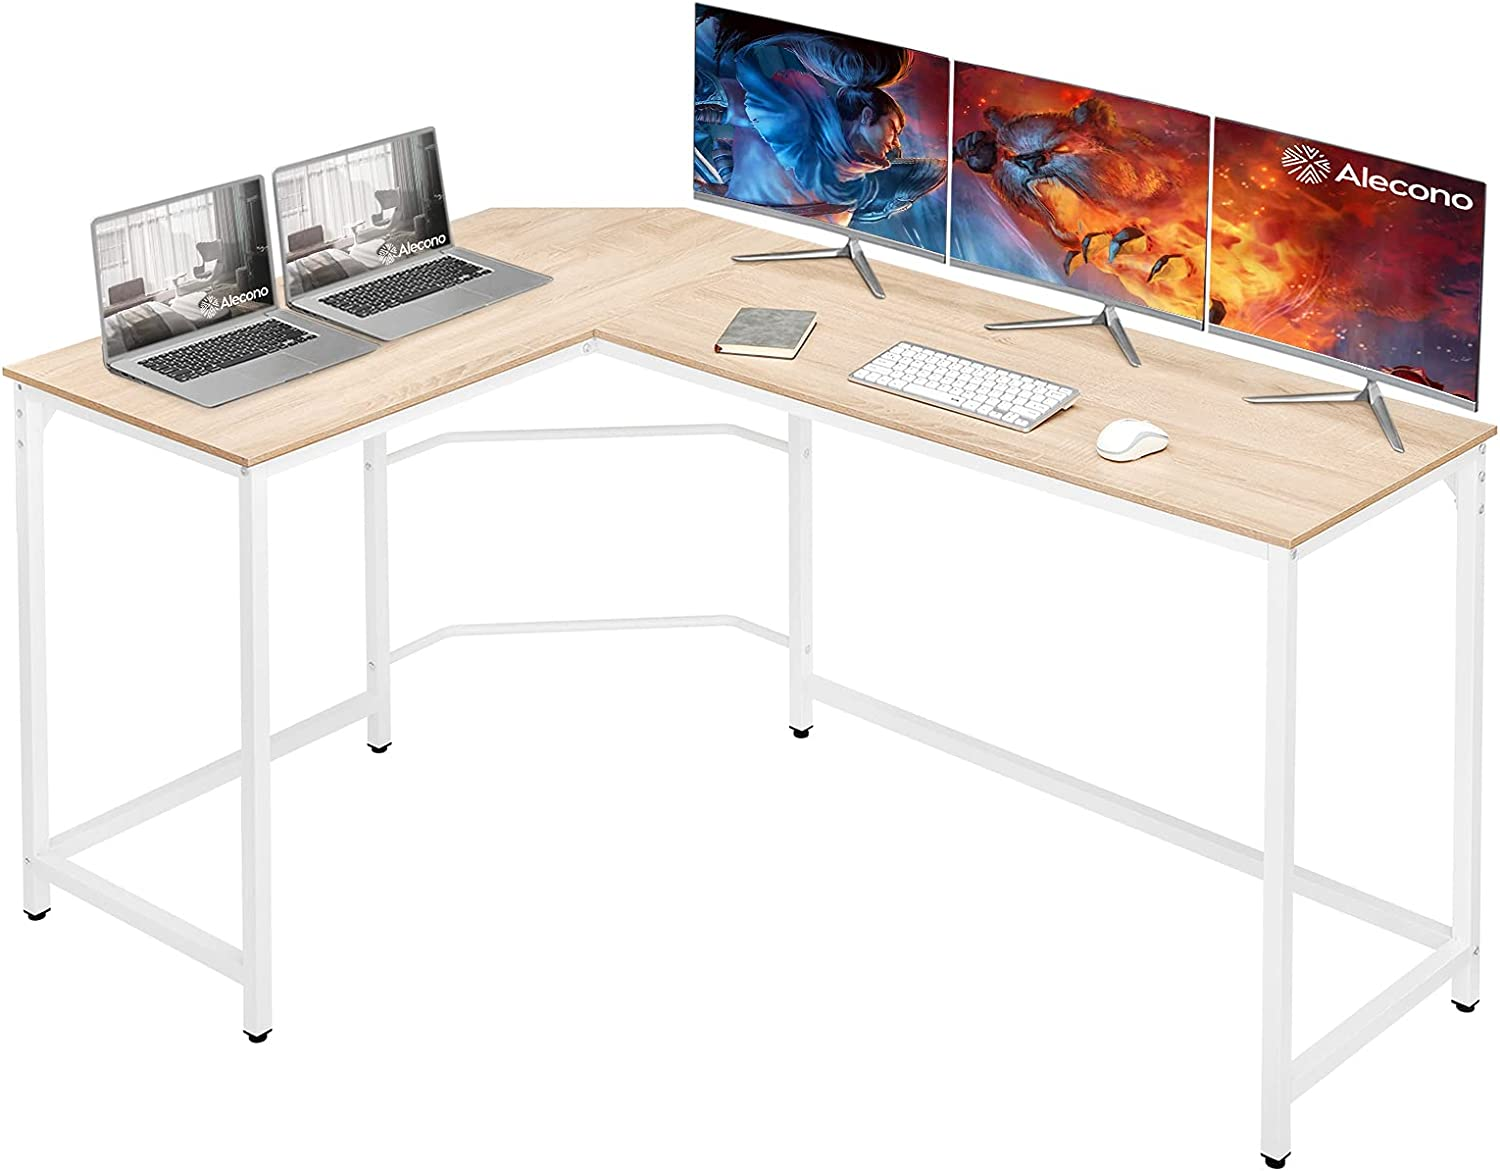 Alecono L Shaped Desk 62 inch Corner Computer Gaming Desk with Large Desktop,Enough legroom Home Office Desk Thicker Steel Structure Sturdy Workstation Table Easy to Assemble and Clean,Oak and White